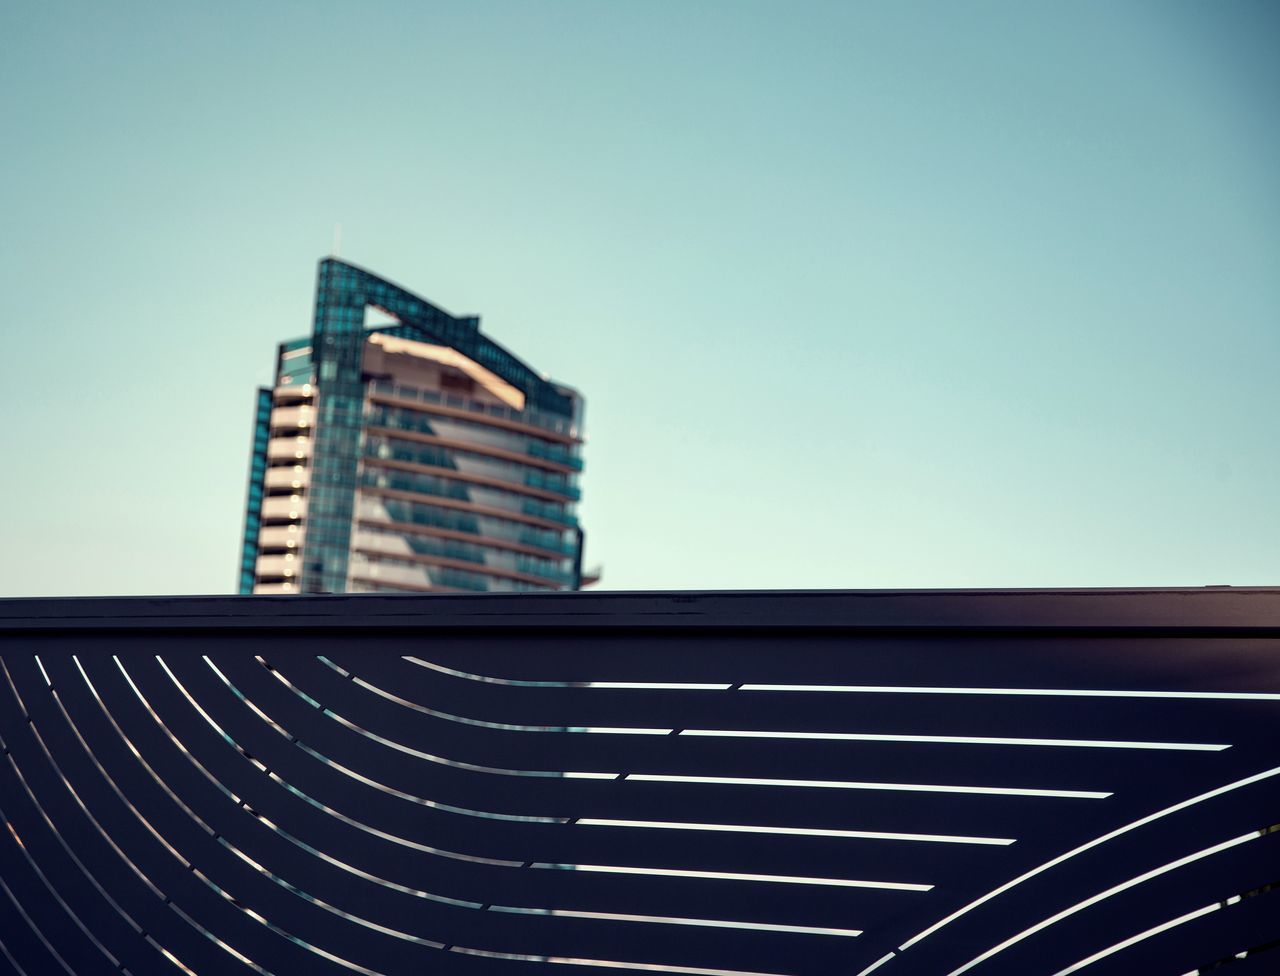 Architecture Building Exterior Built Structure City Clear Sky Day Low Angle View Modern No People Outdoors Sky Skyscraper